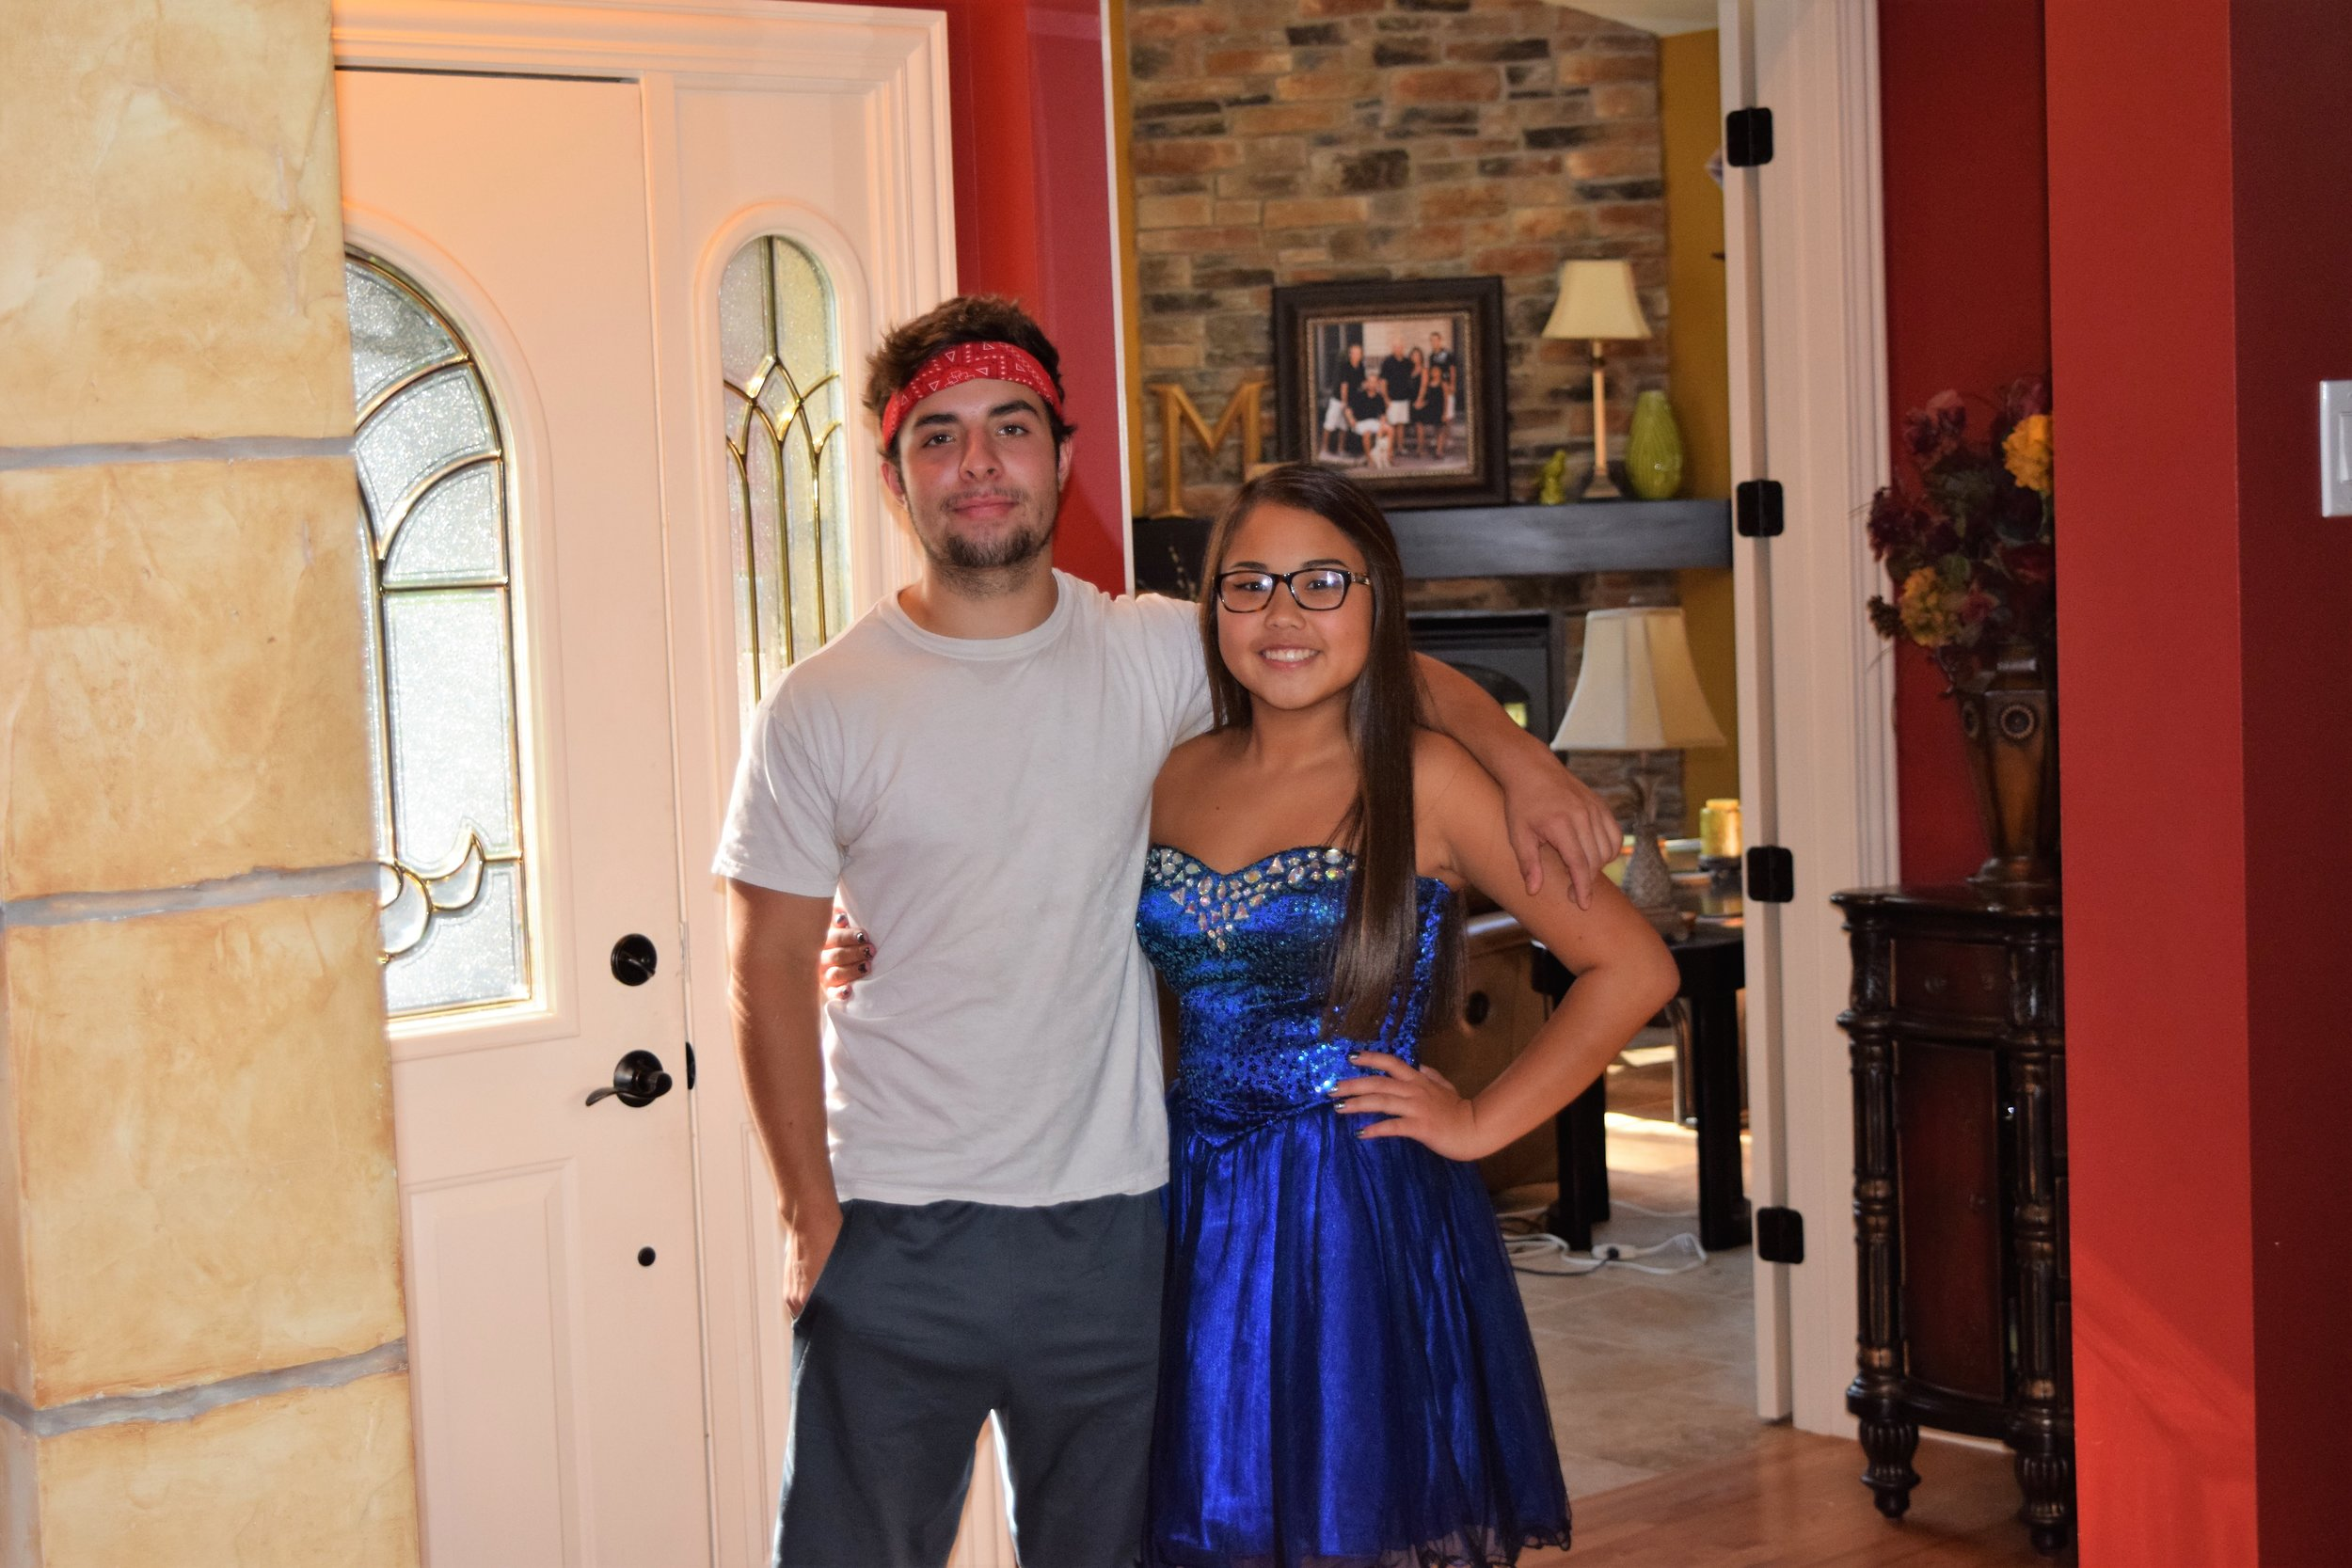 September 26, 2015. Nick with Laney right before her Homecoming dance.